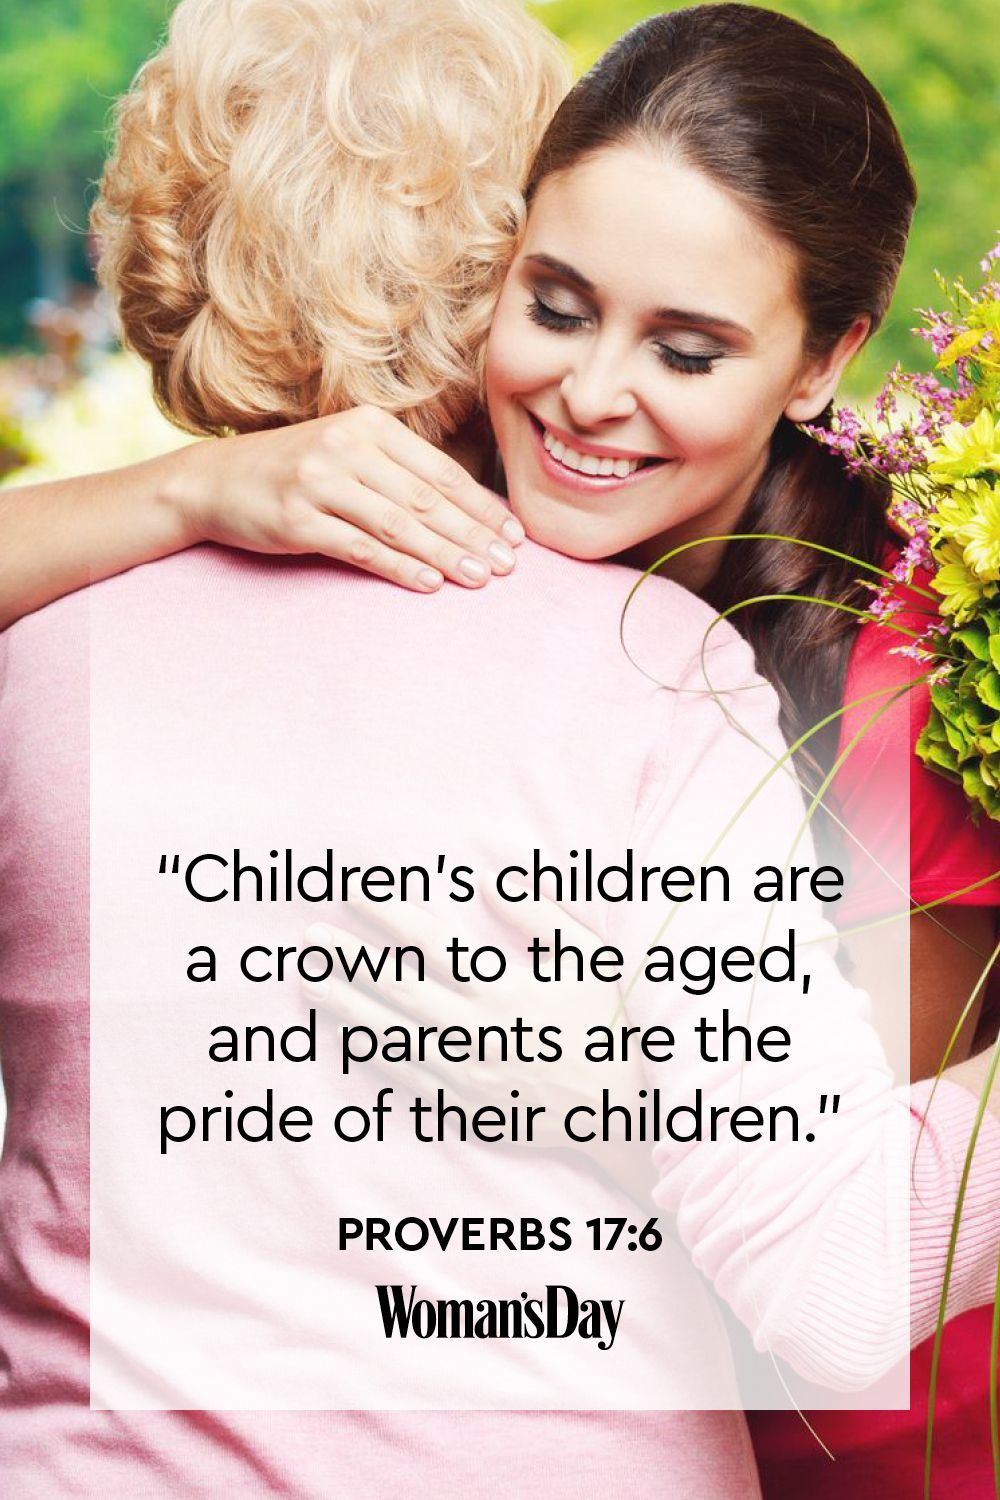 17 Bible Verses About Mothers 2020 Bible Verses For Mom